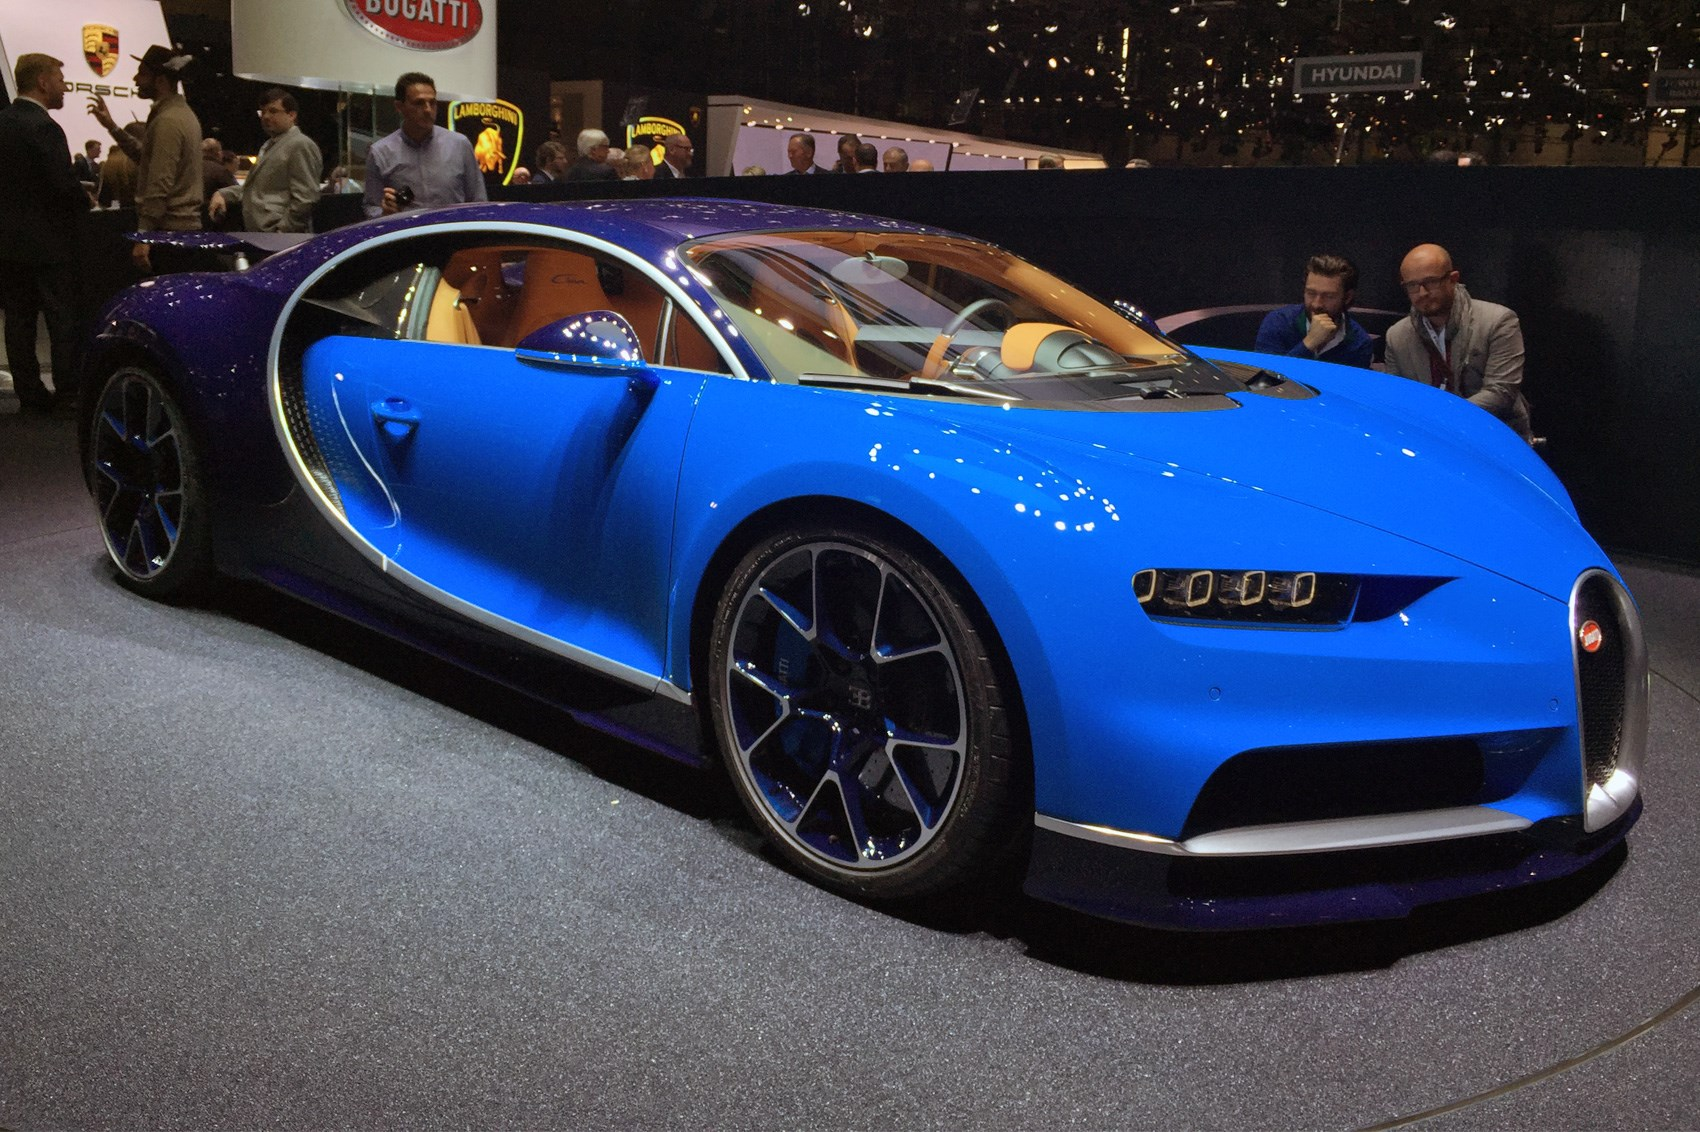 Ultrablogus  Winning Bugatti Is Go New Chiron Name Confirmed Here At Geneva  By  With Extraordinary Bugatti Chiron Revealed At Geneva  The World Has A New Fastest Production Car With Appealing  Gmc Yukon Xl Interior Also Grand Am Interior In Addition  Dodge Dakota Interior And Chevrolet Celebrity Interior As Well As Ford Mustang  Interior Additionally  Gto Interior From Carmagazinecouk With Ultrablogus  Extraordinary Bugatti Is Go New Chiron Name Confirmed Here At Geneva  By  With Appealing Bugatti Chiron Revealed At Geneva  The World Has A New Fastest Production Car And Winning  Gmc Yukon Xl Interior Also Grand Am Interior In Addition  Dodge Dakota Interior From Carmagazinecouk